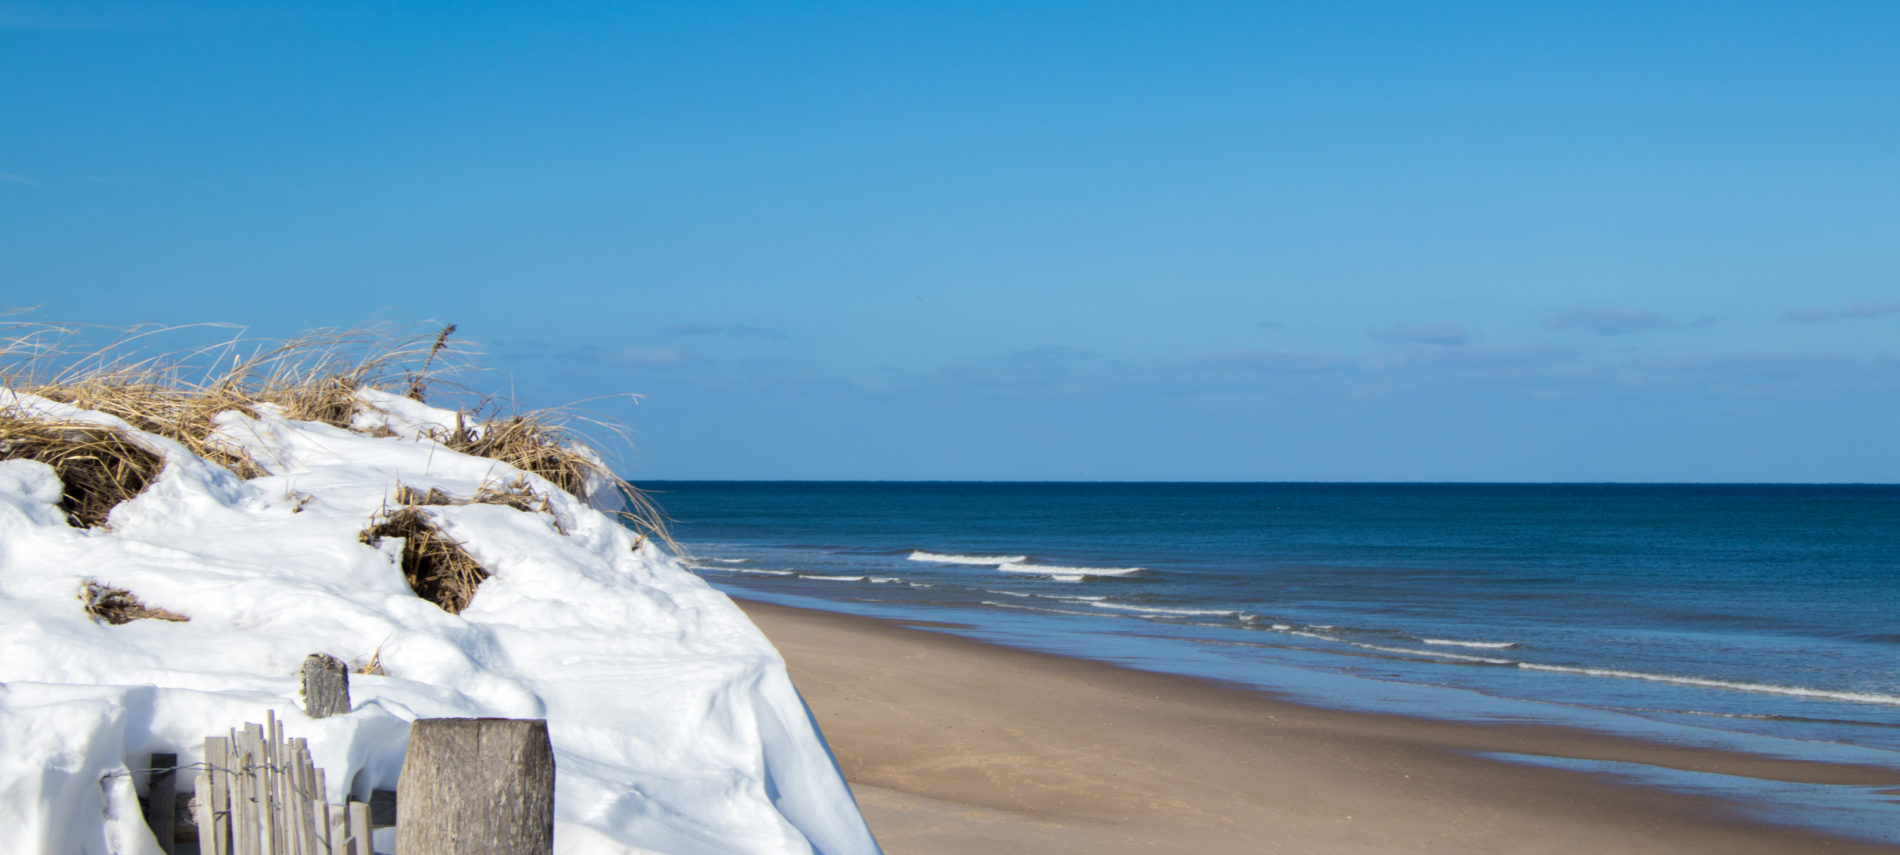 Nauset Beach with snow-covered dunes looking onto the waves